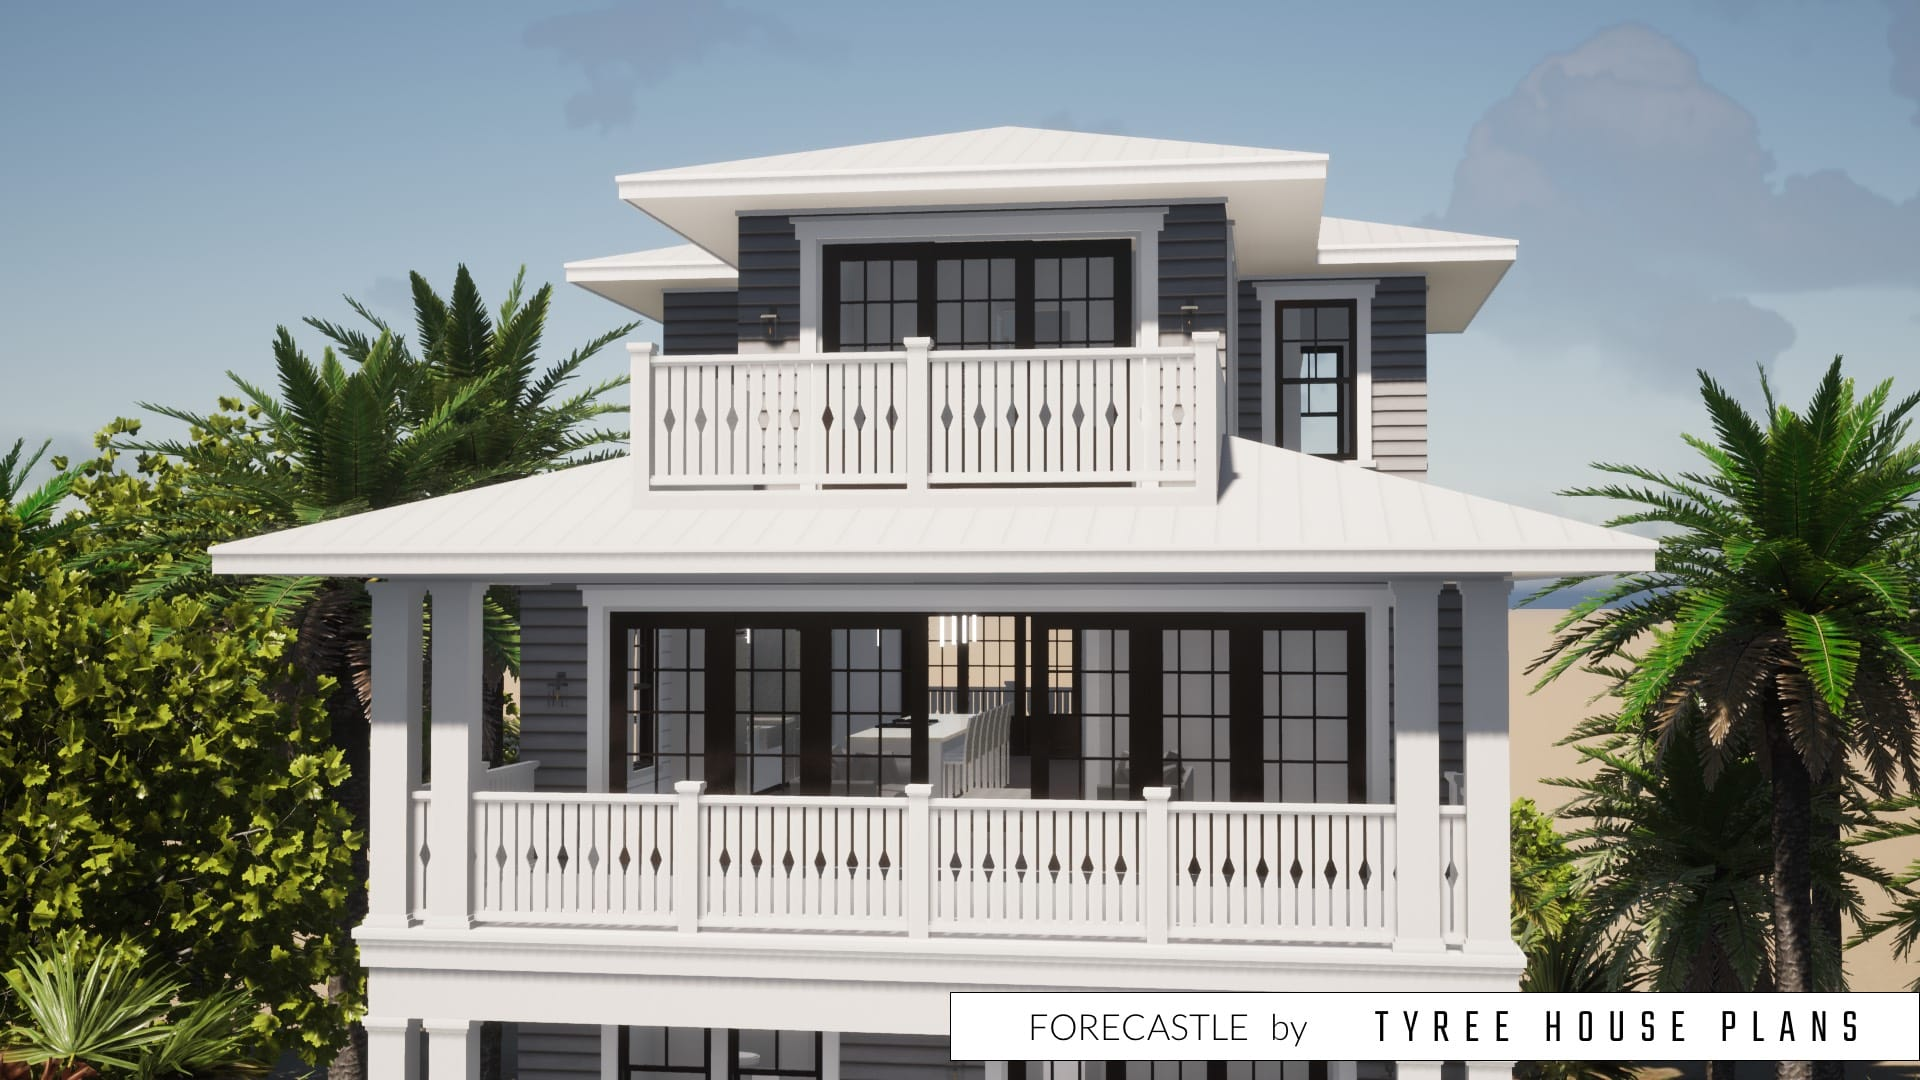 Forecastle House Plan by Tyree House Plans